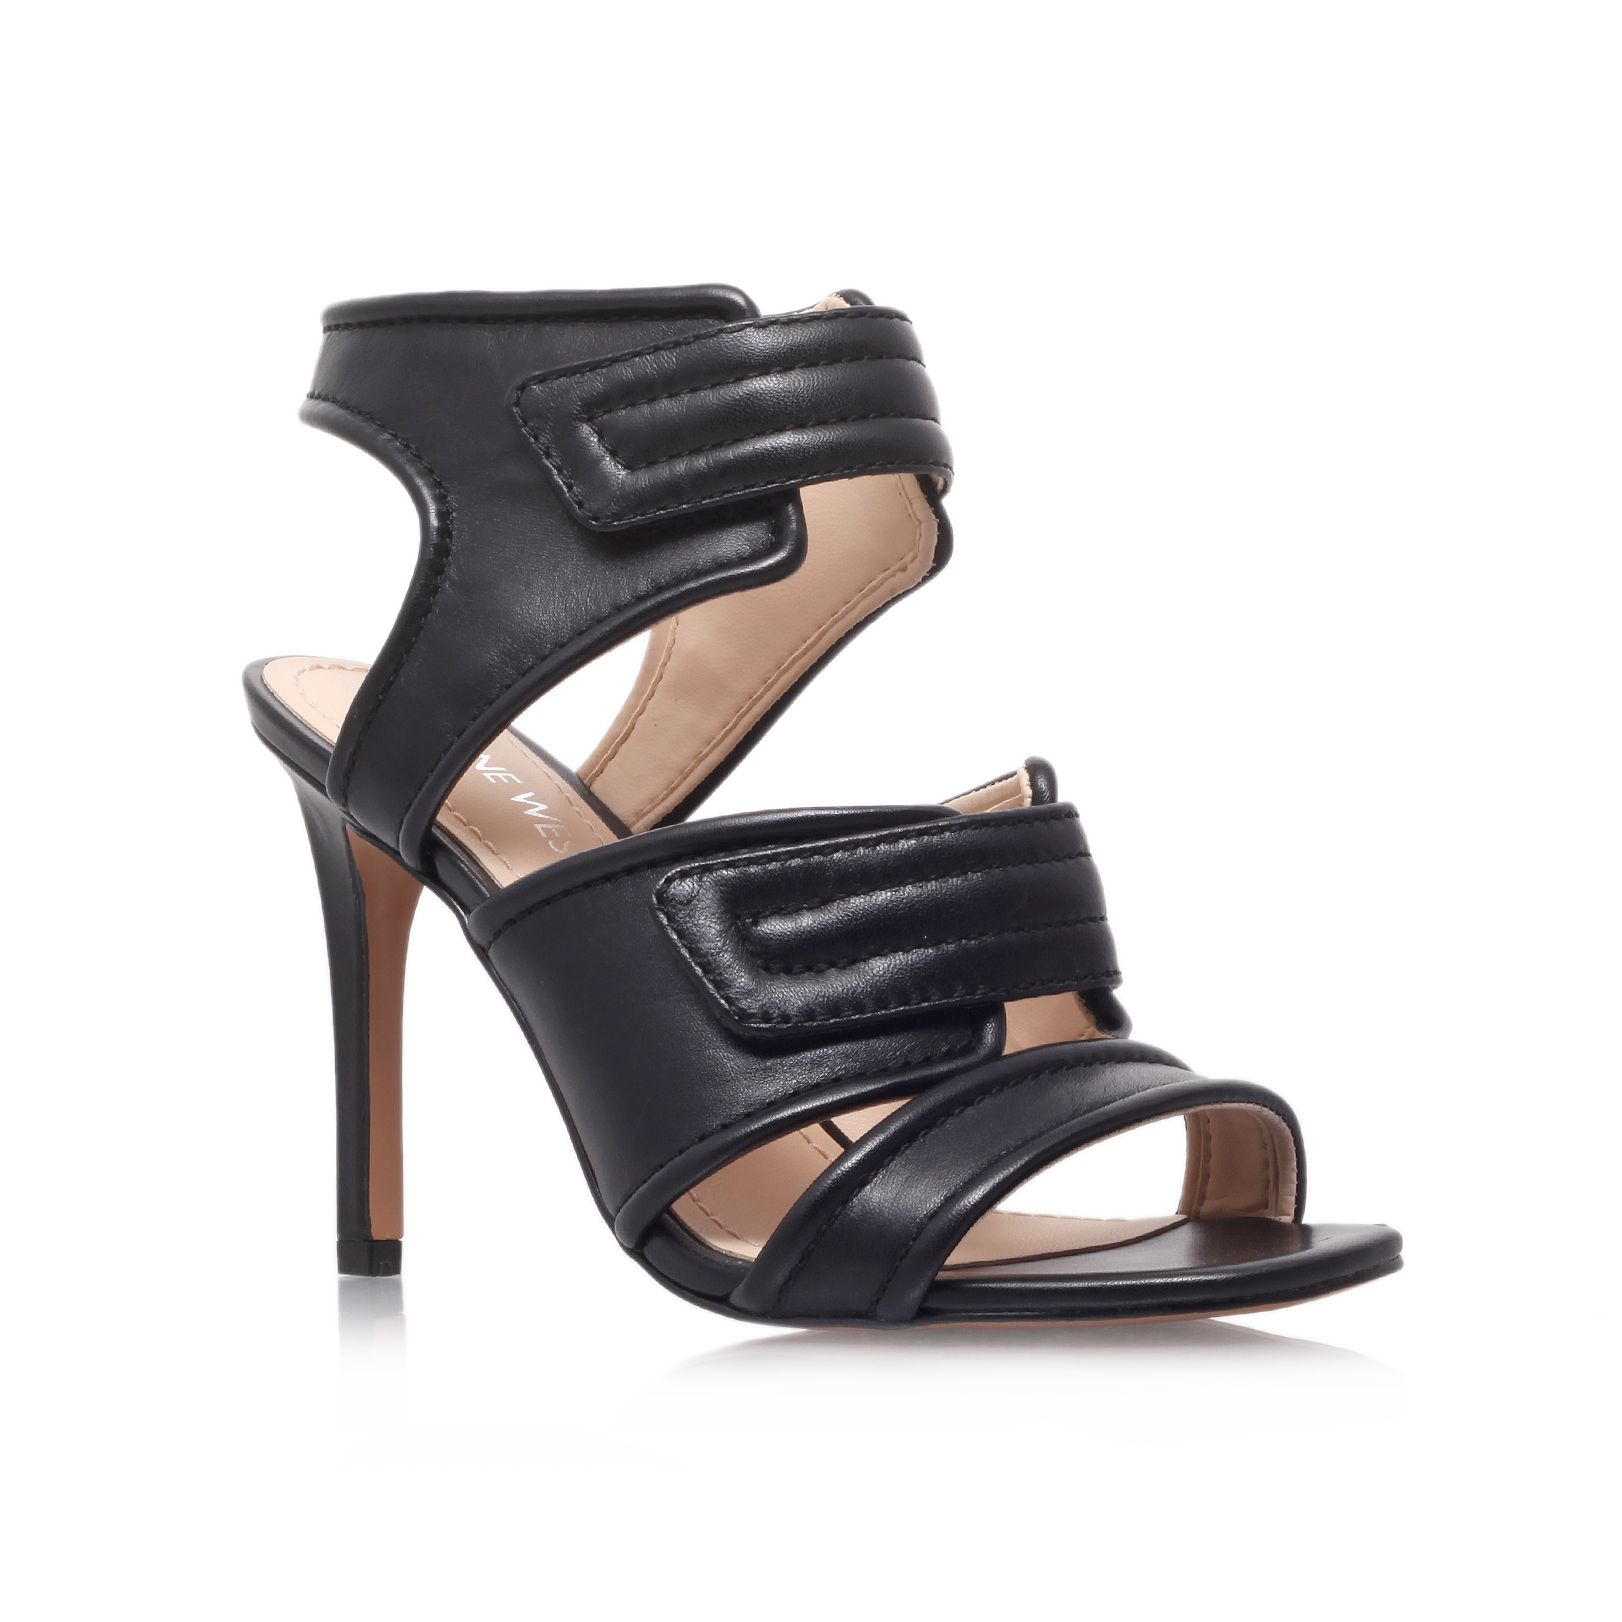 Kristilee leather high heel sandals